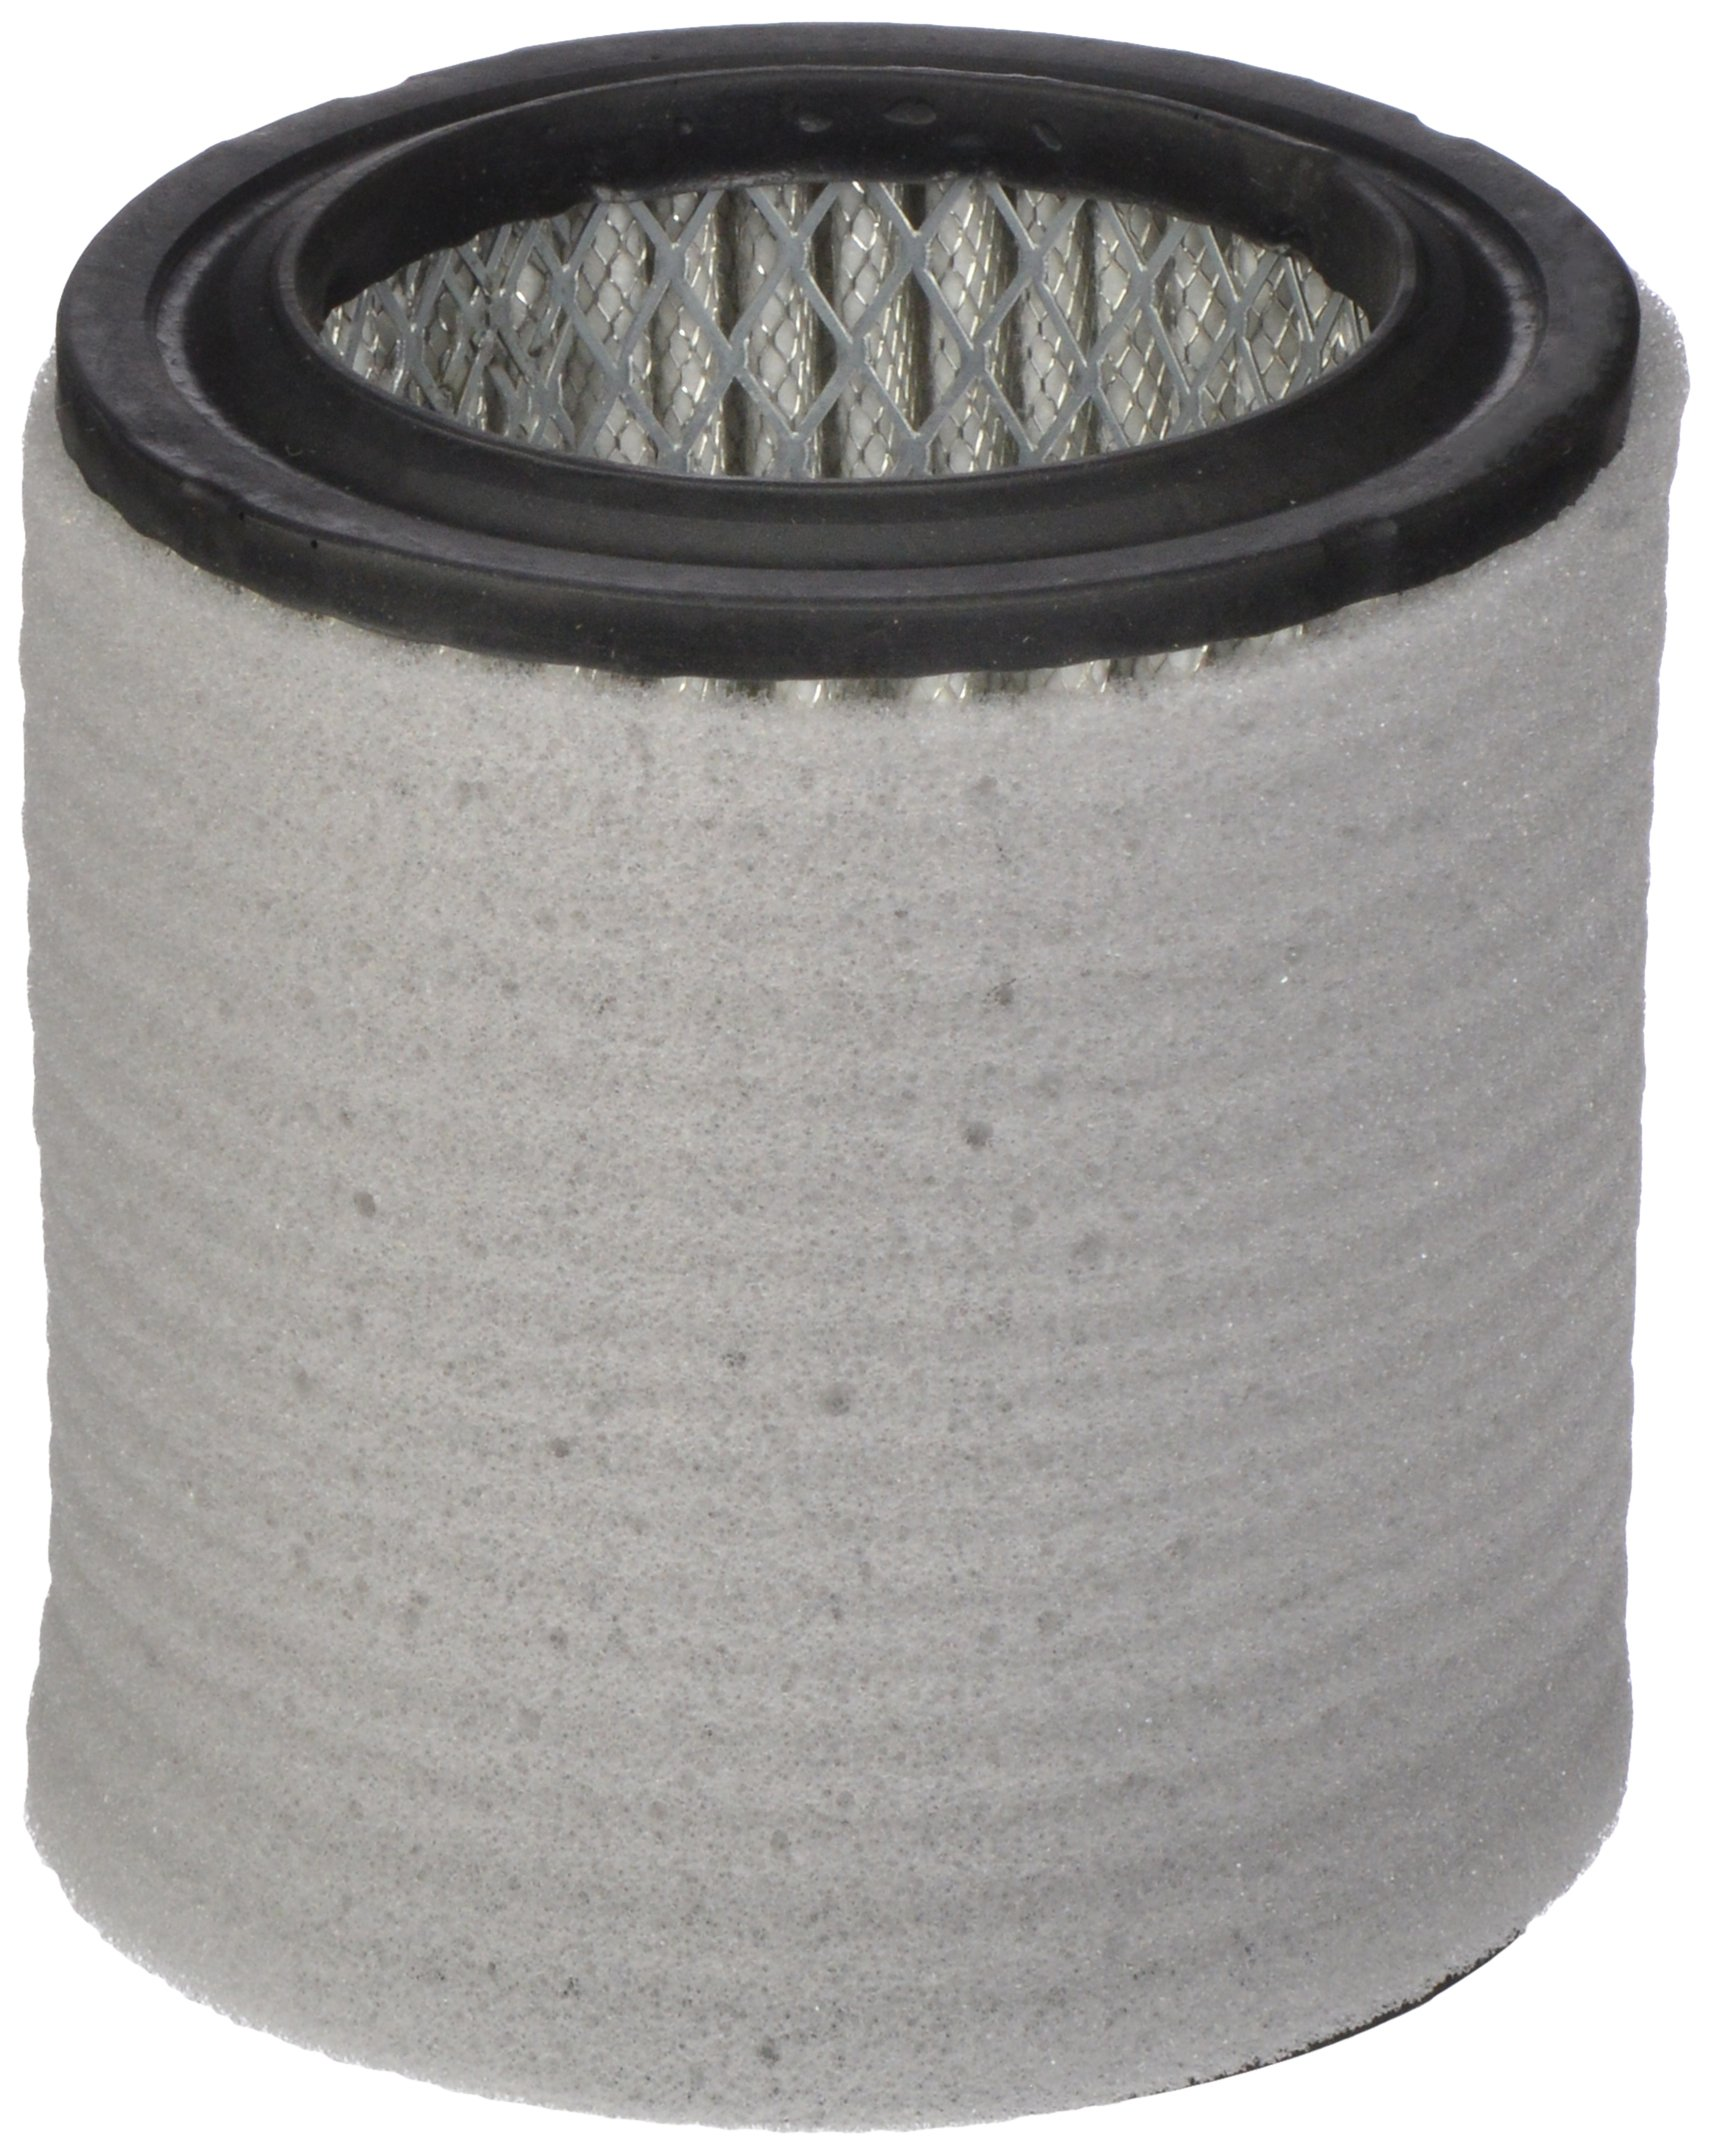 Killer Filter Replacement for Quincy 110377E100 (Pack of 3)